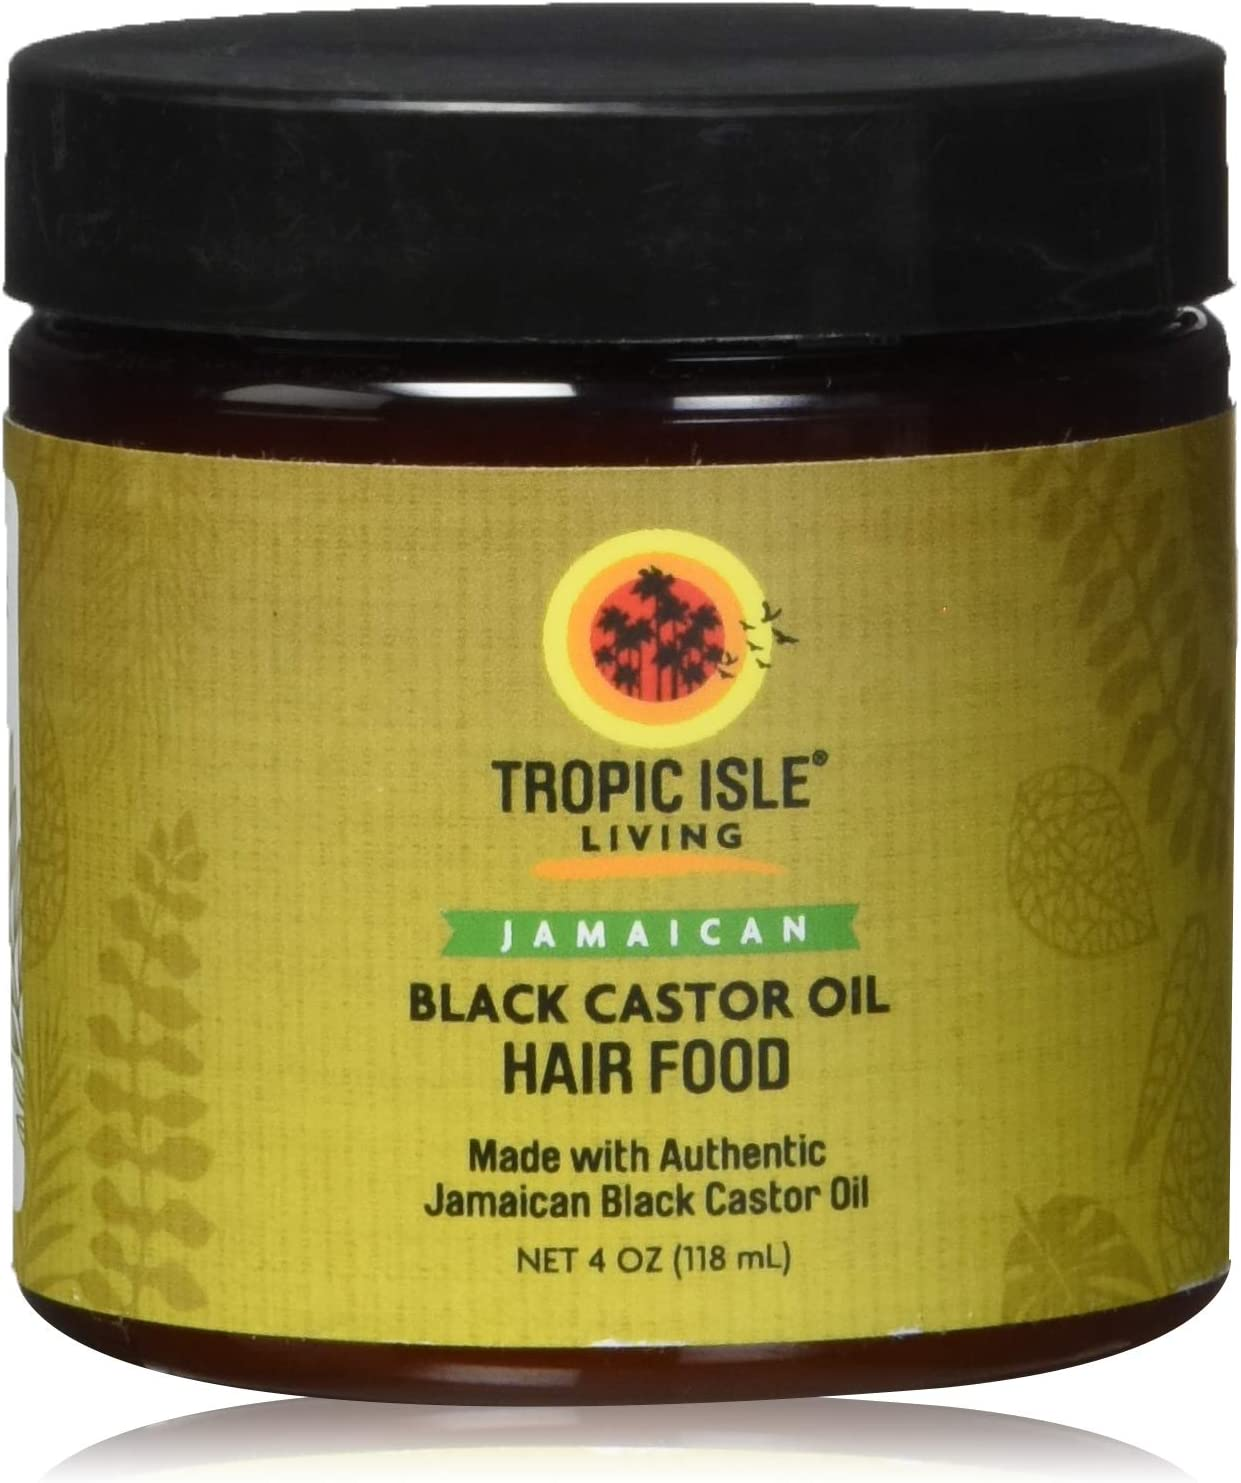 Jamaican Black Castor Oil Hair Food